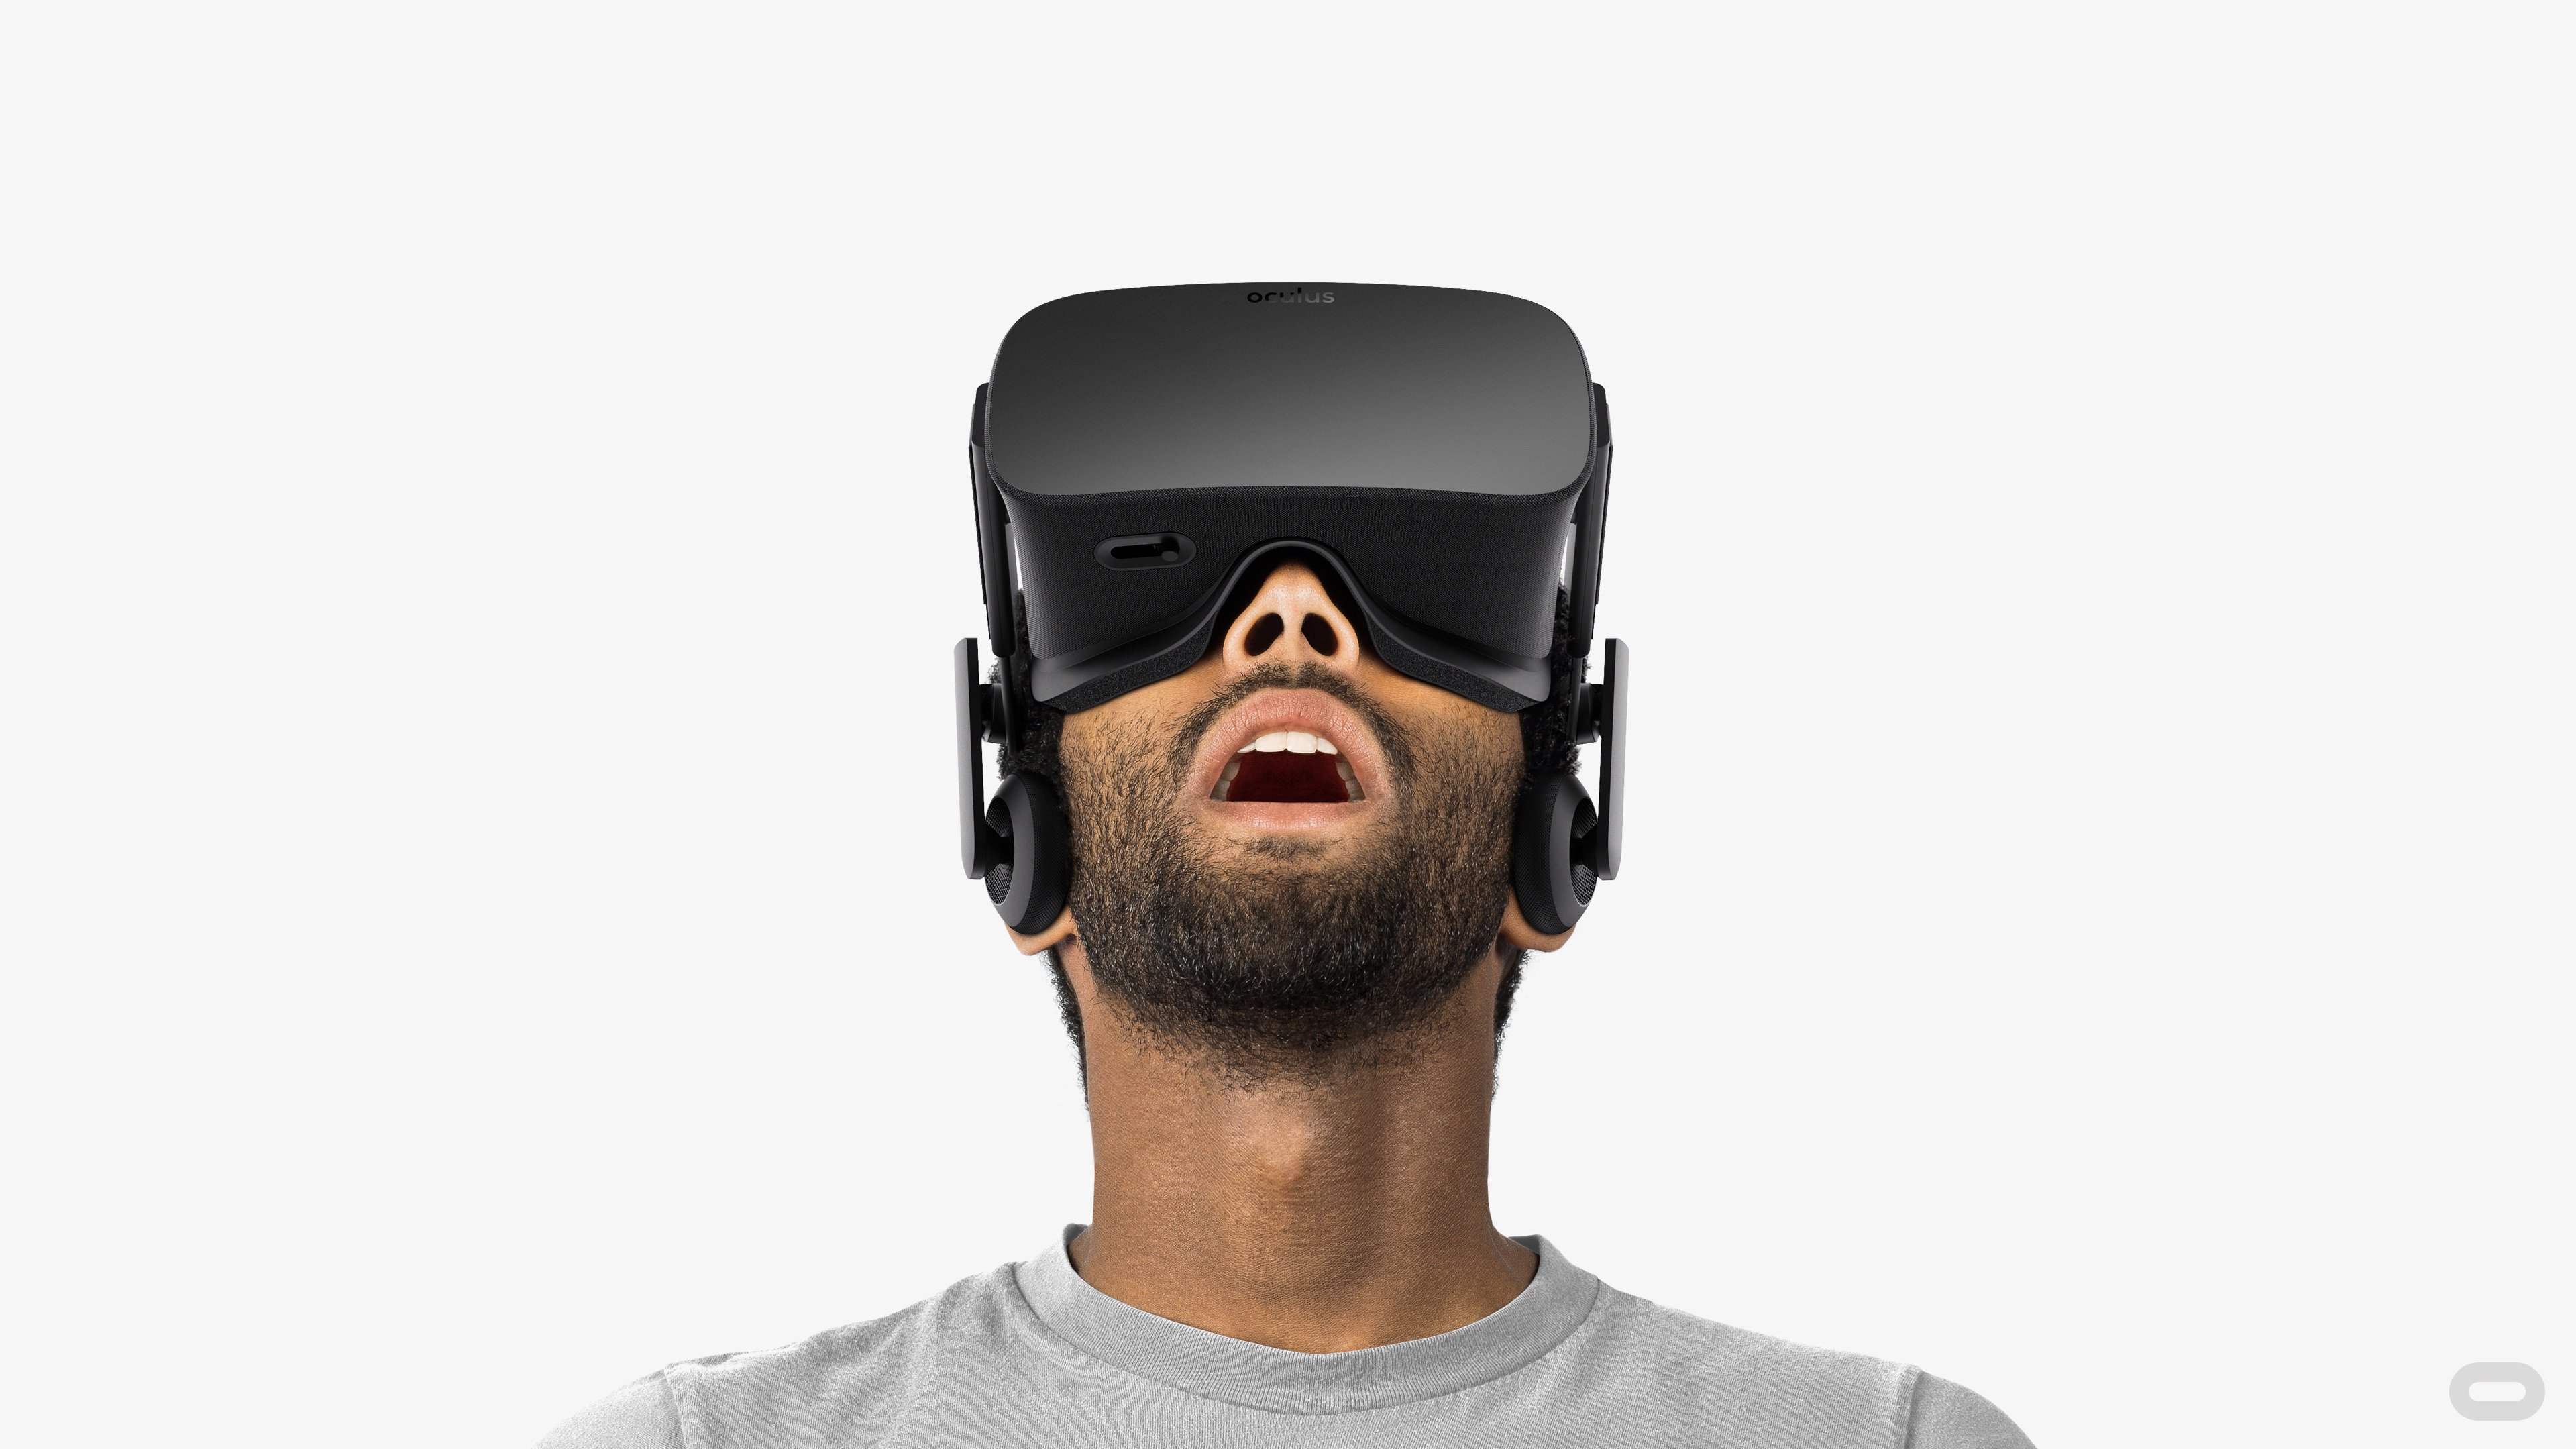 Person using Oculus Rift